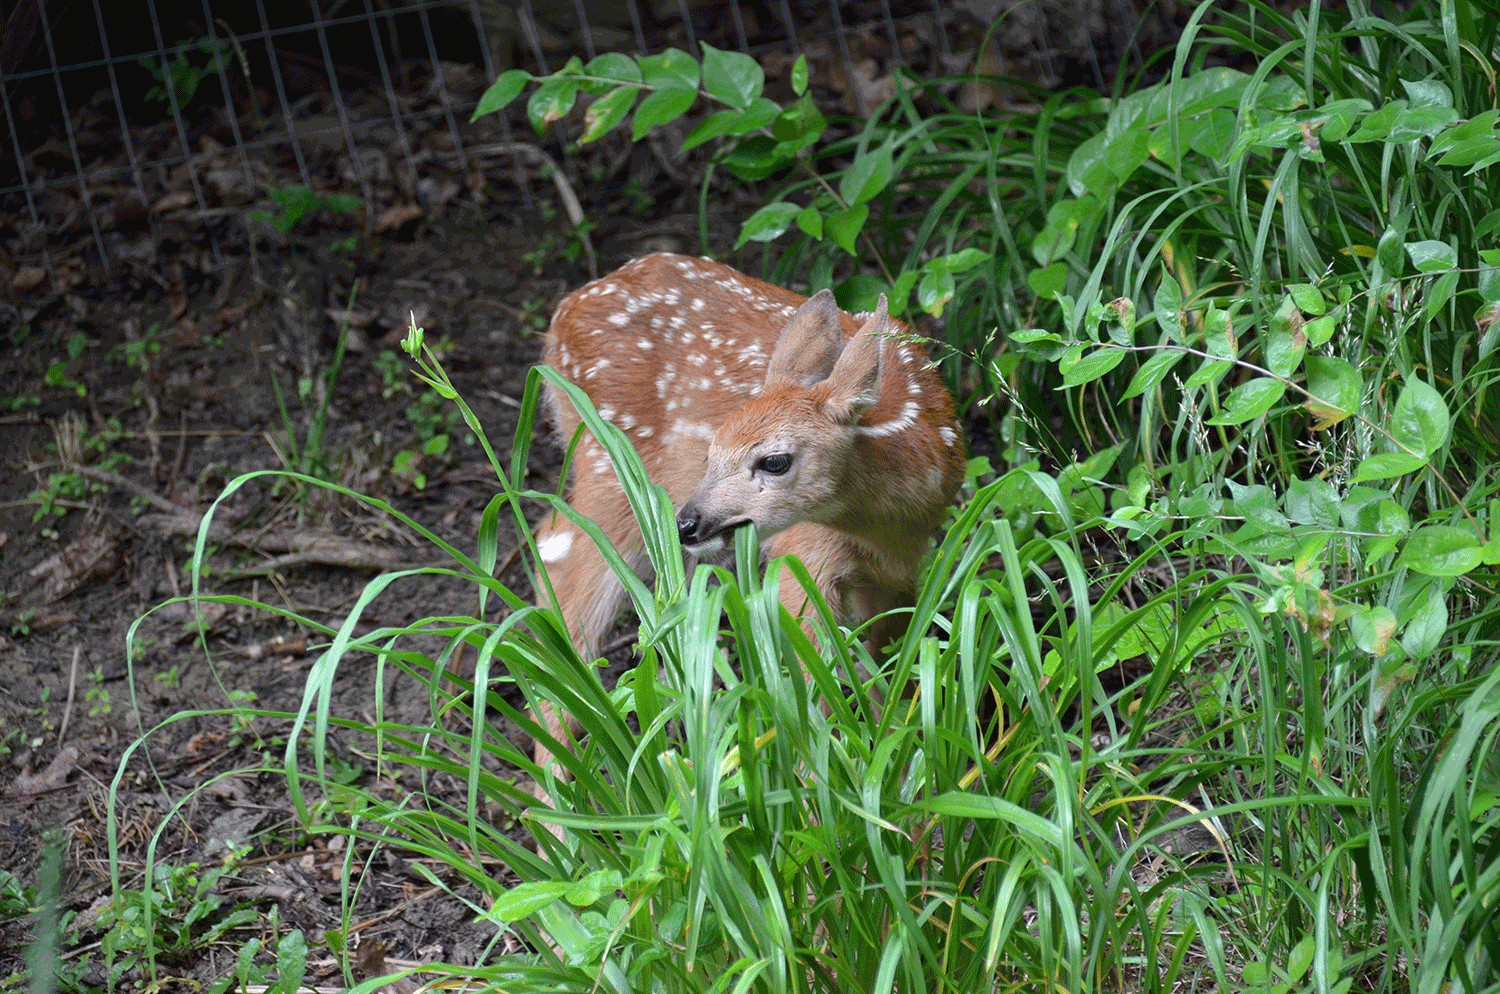 A third option is to get a pet deer. They destroy weeds and pretty much everything else. Super cute though.